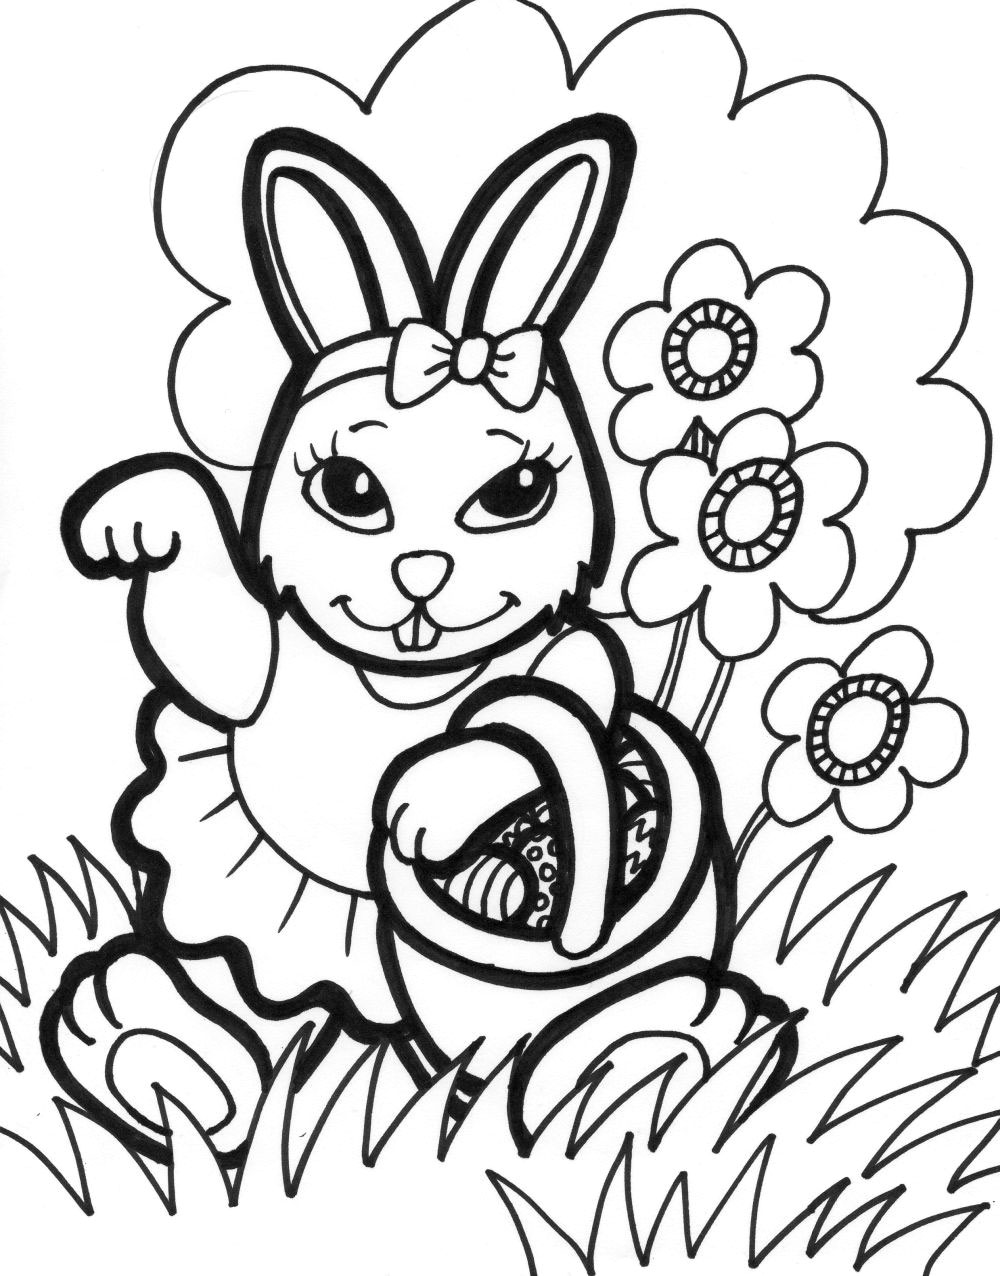 easter-bunny coloring pages for kids,printable,coloring pages